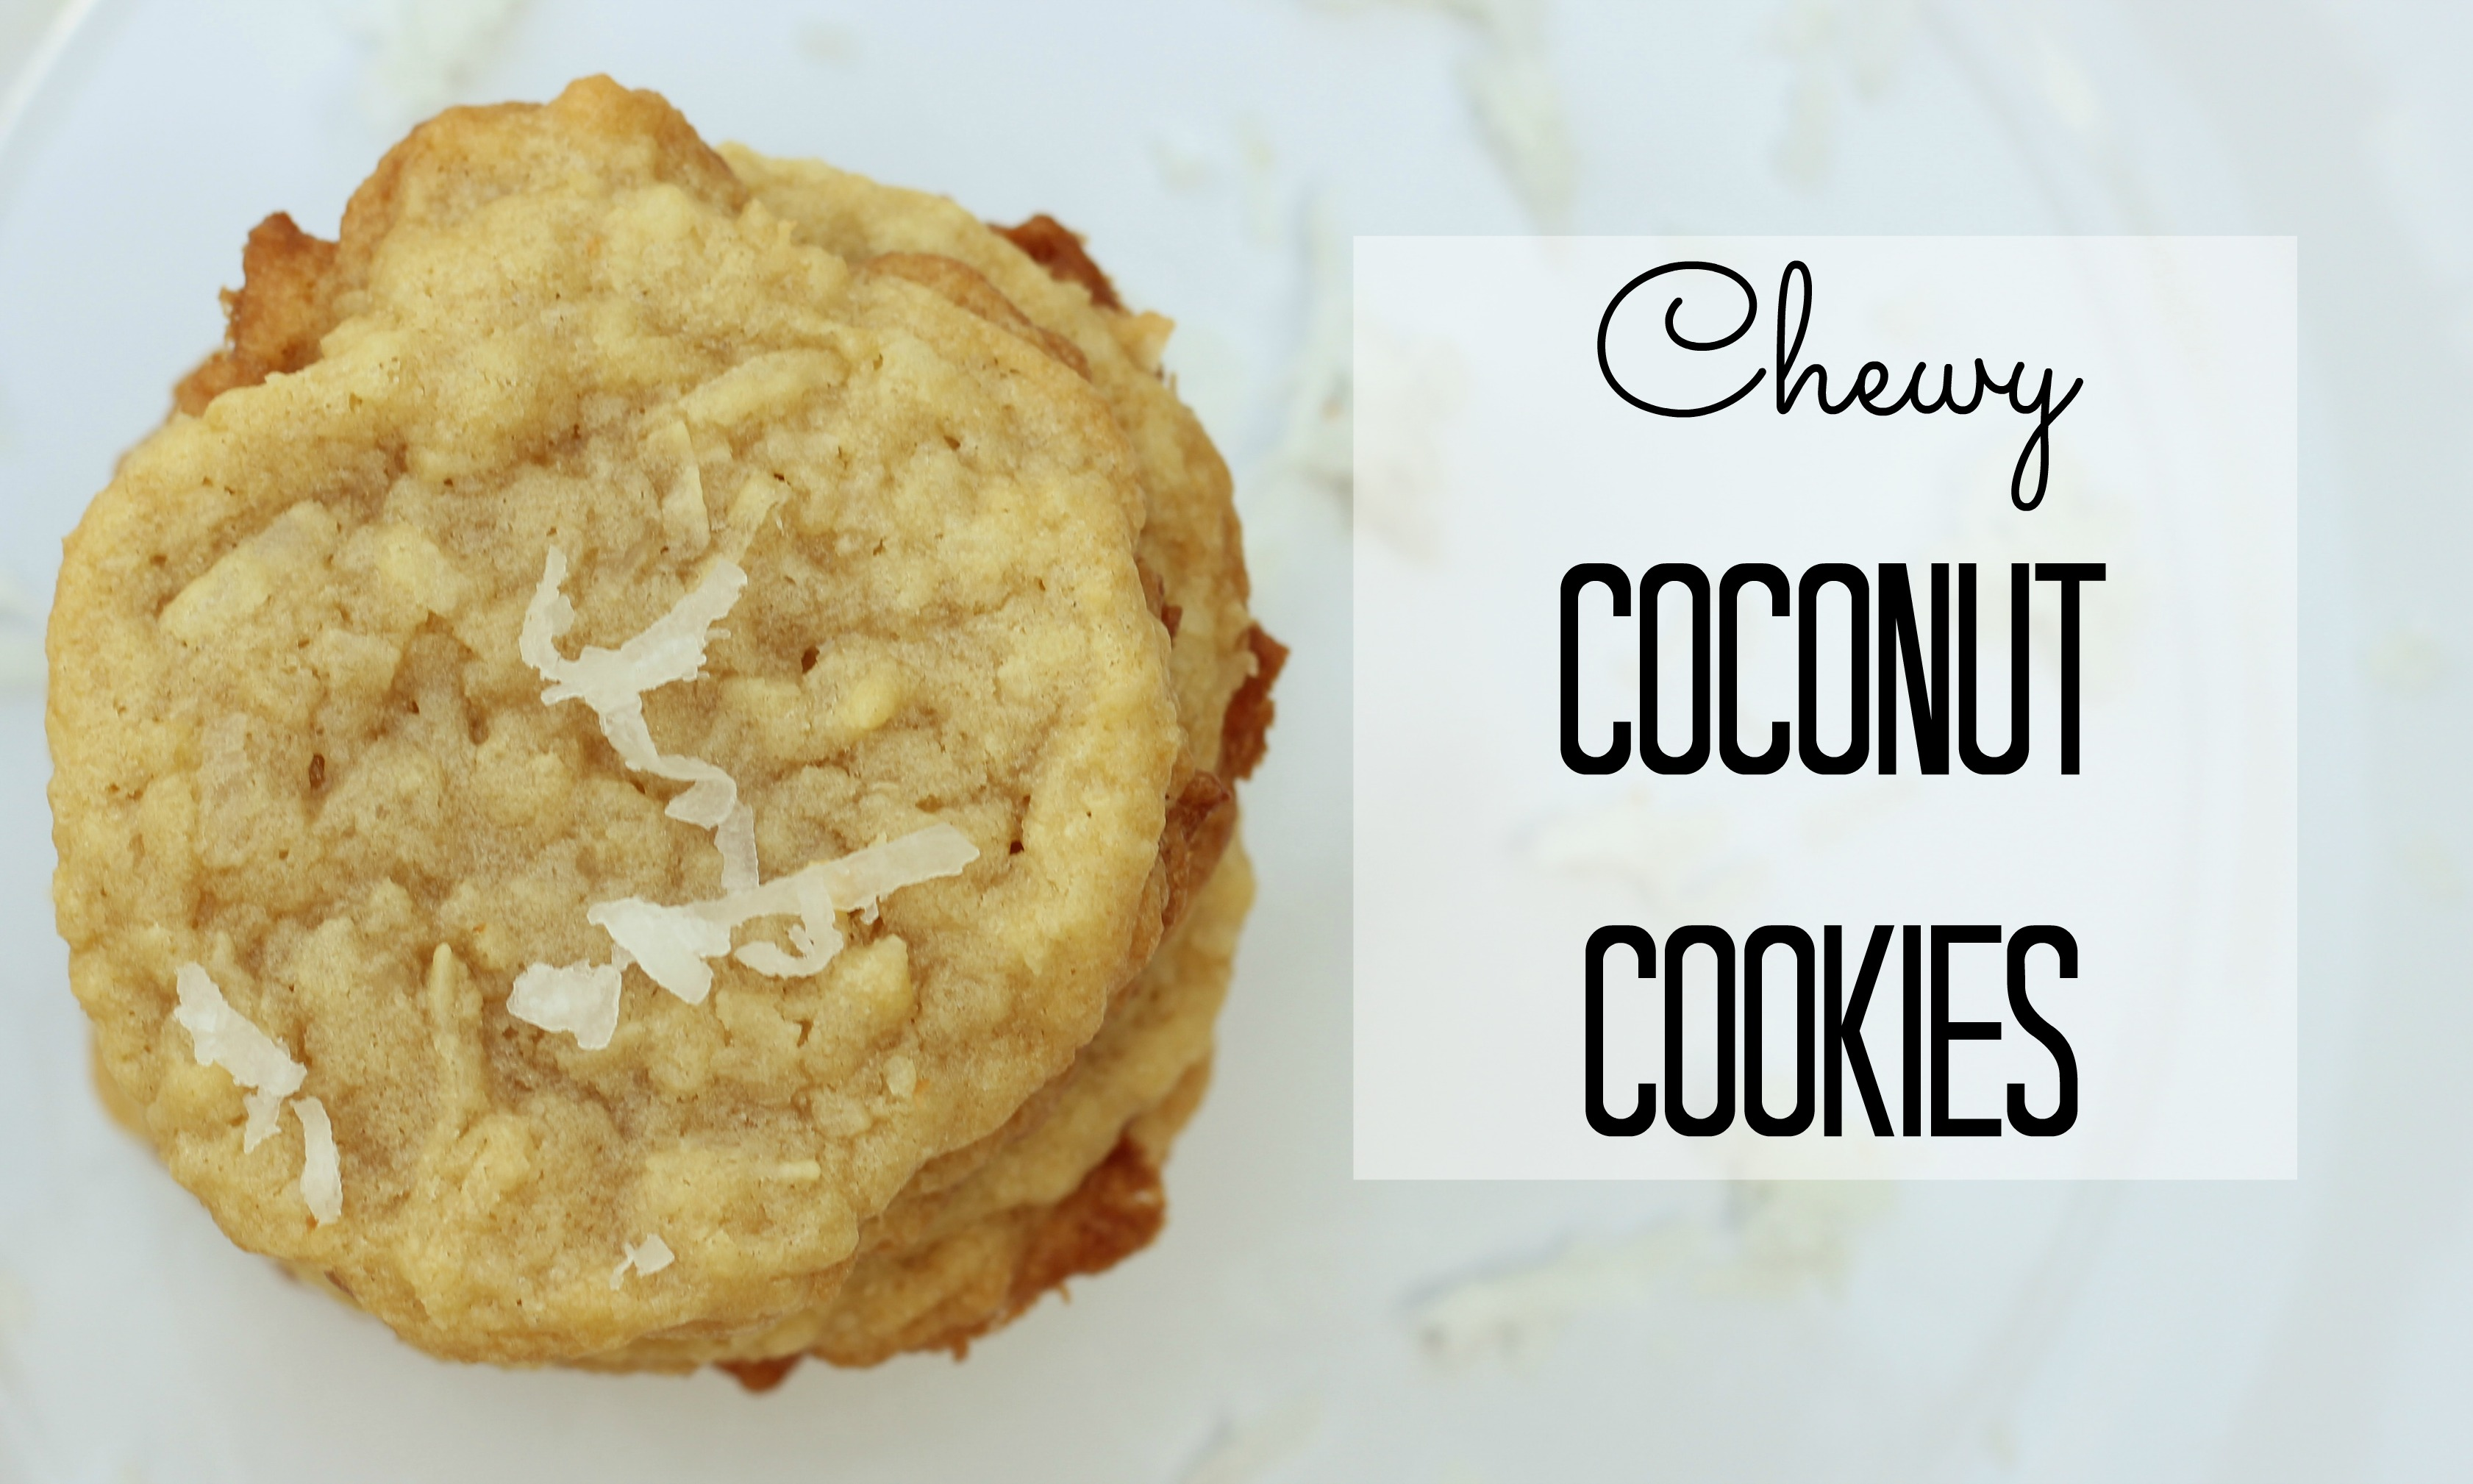 intrigued by the Coconut and was inspired to make Coconut Cookies ...